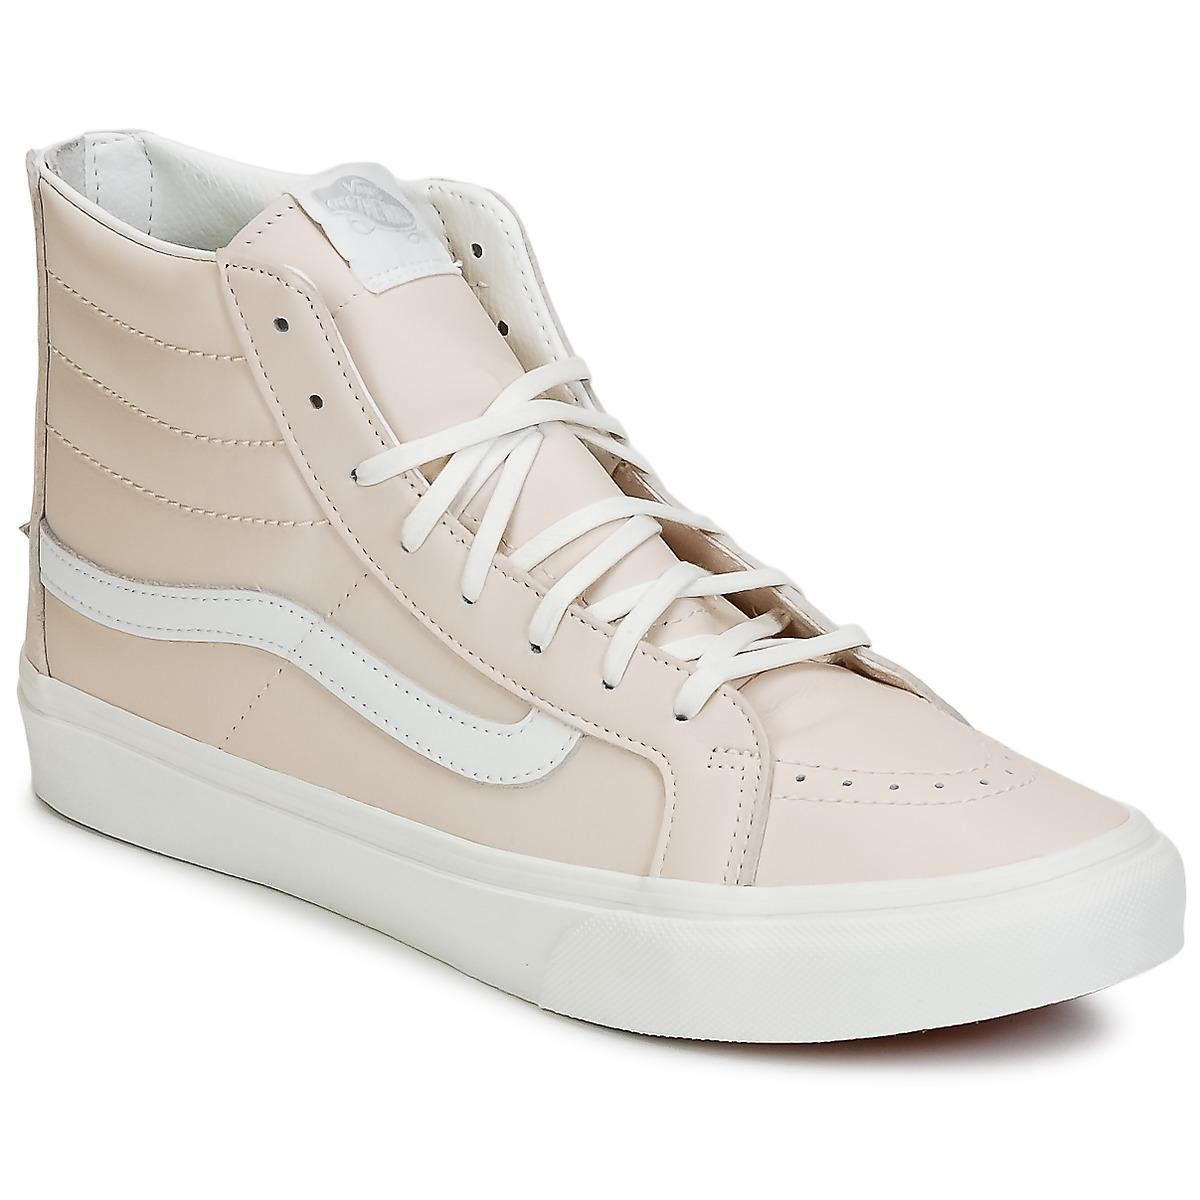 d6f9b74572 Vans Sk8-hi Slim Zip Shoes (high-top Trainers) in Pink - Lyst